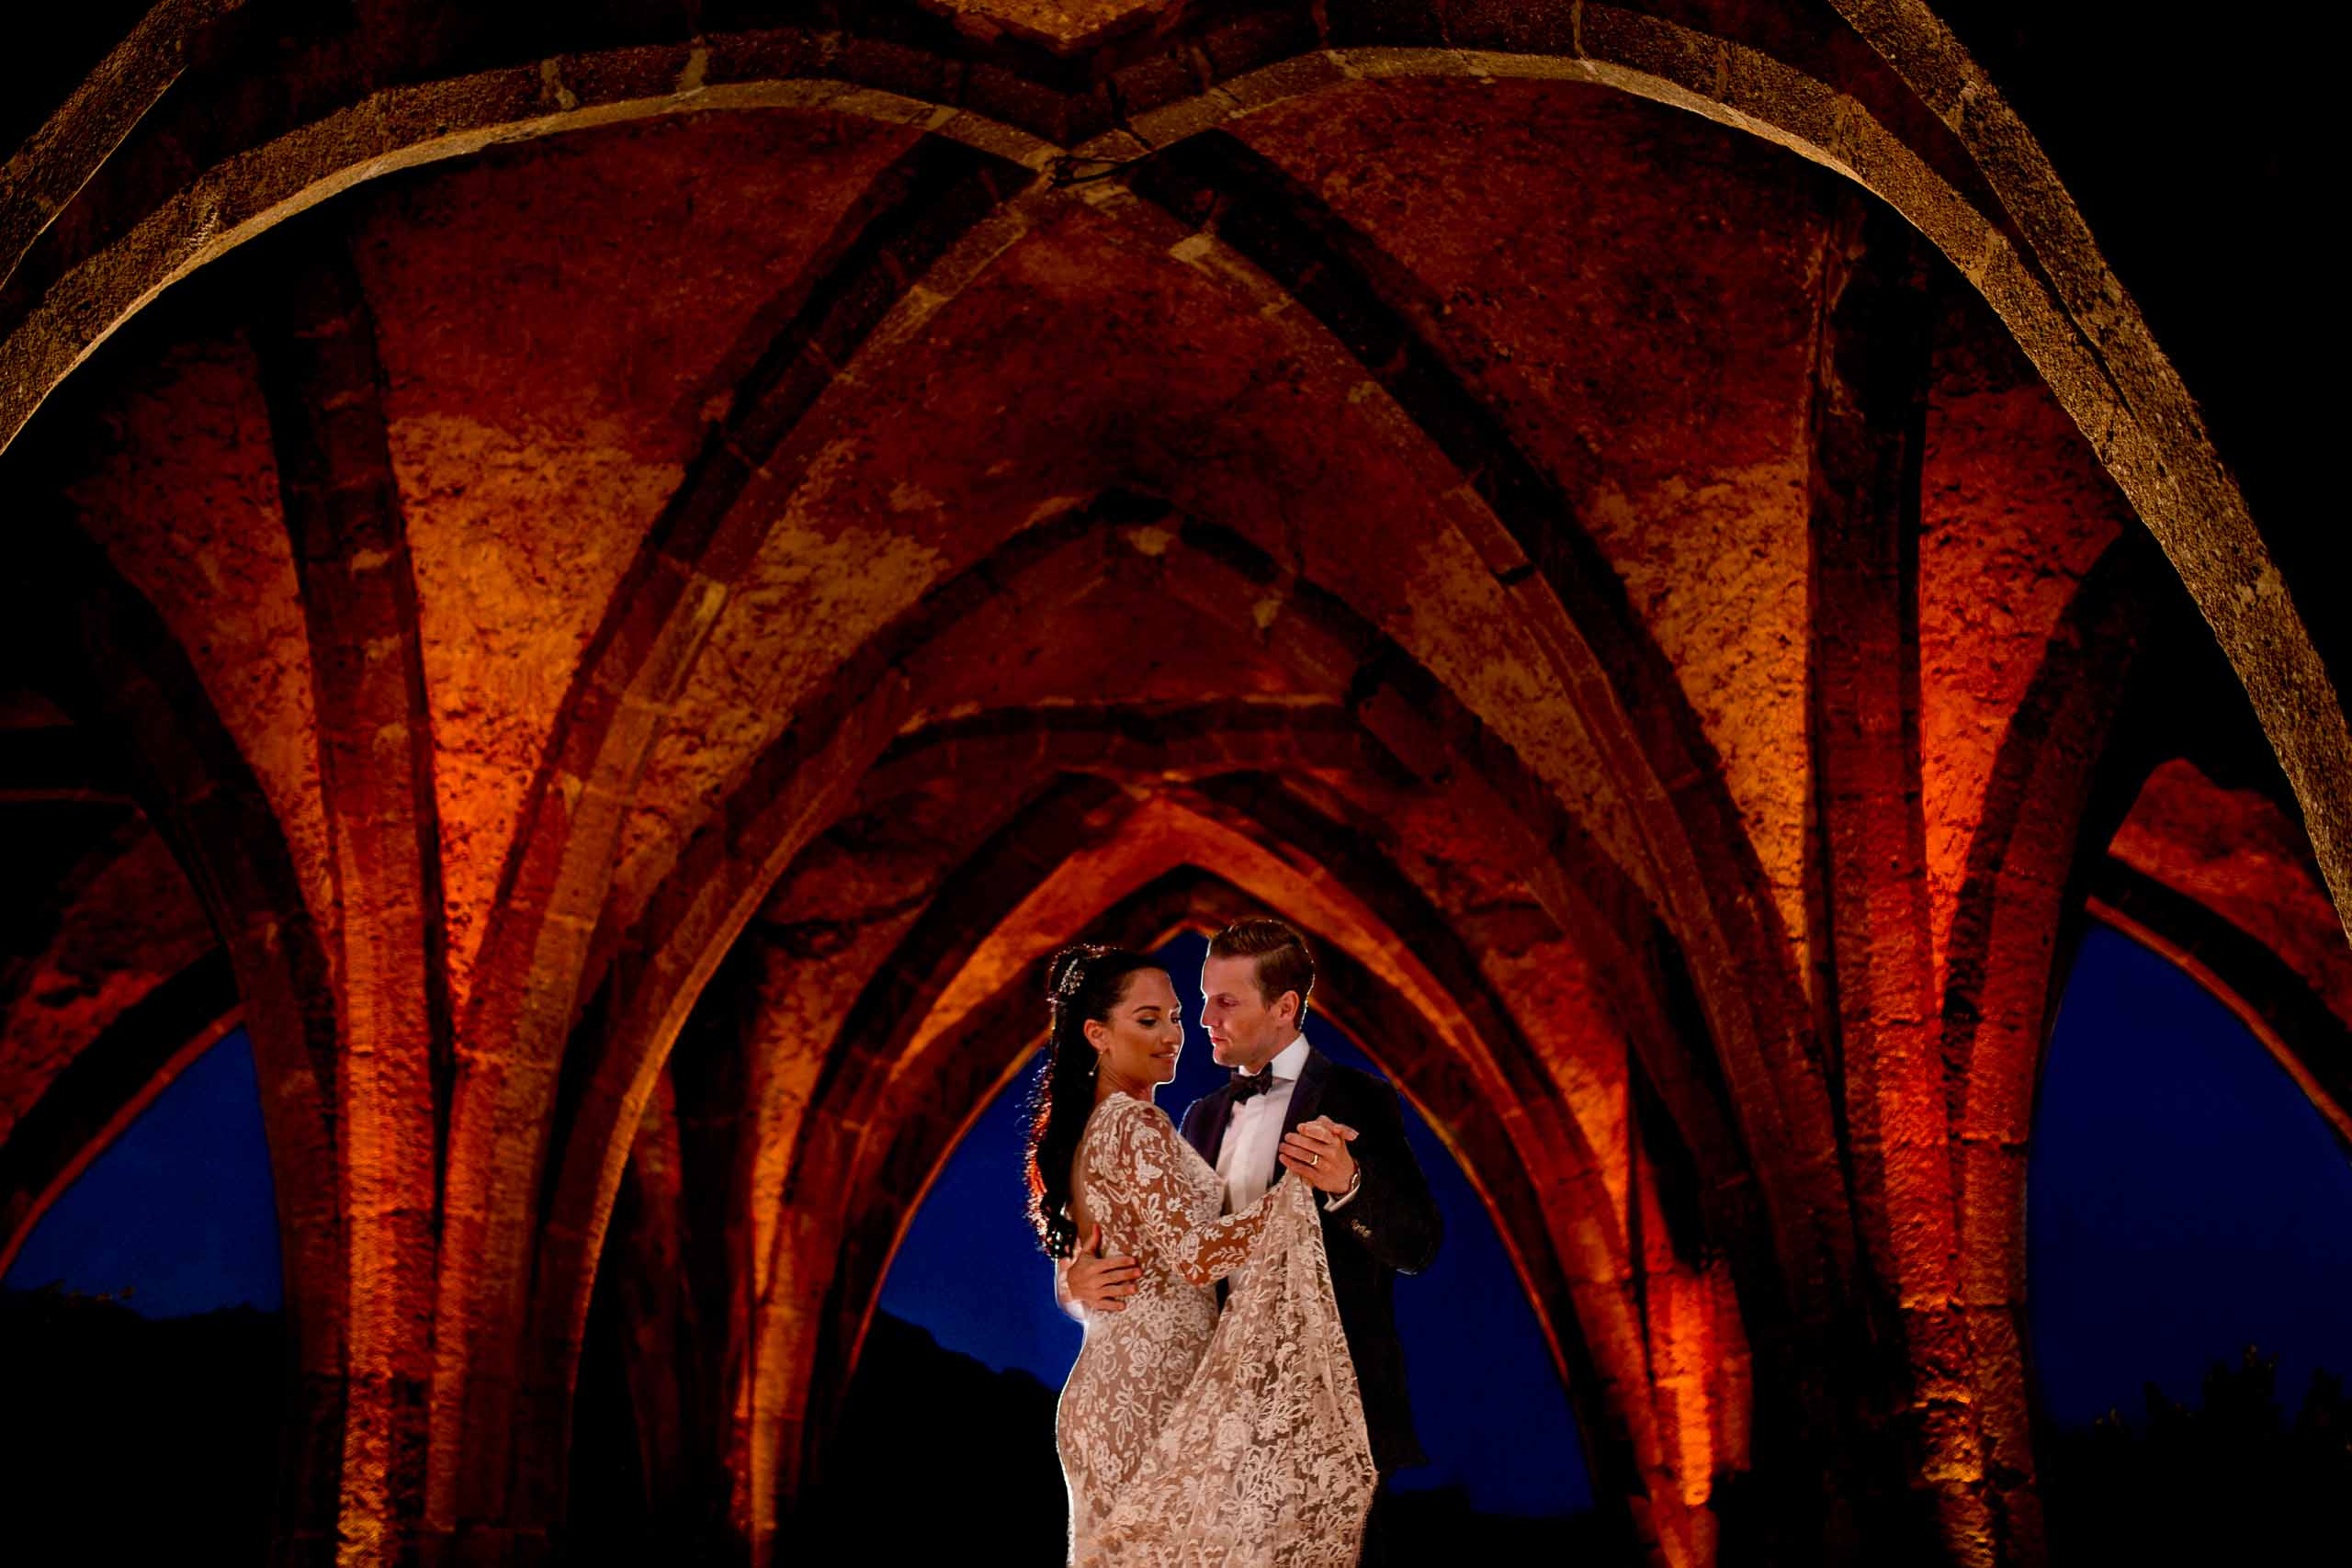 Beautiful bride and groom reception photo at Villa Cimbrone in the crypt for their Ravello wedding elopement along the Amafi coast in Italy.